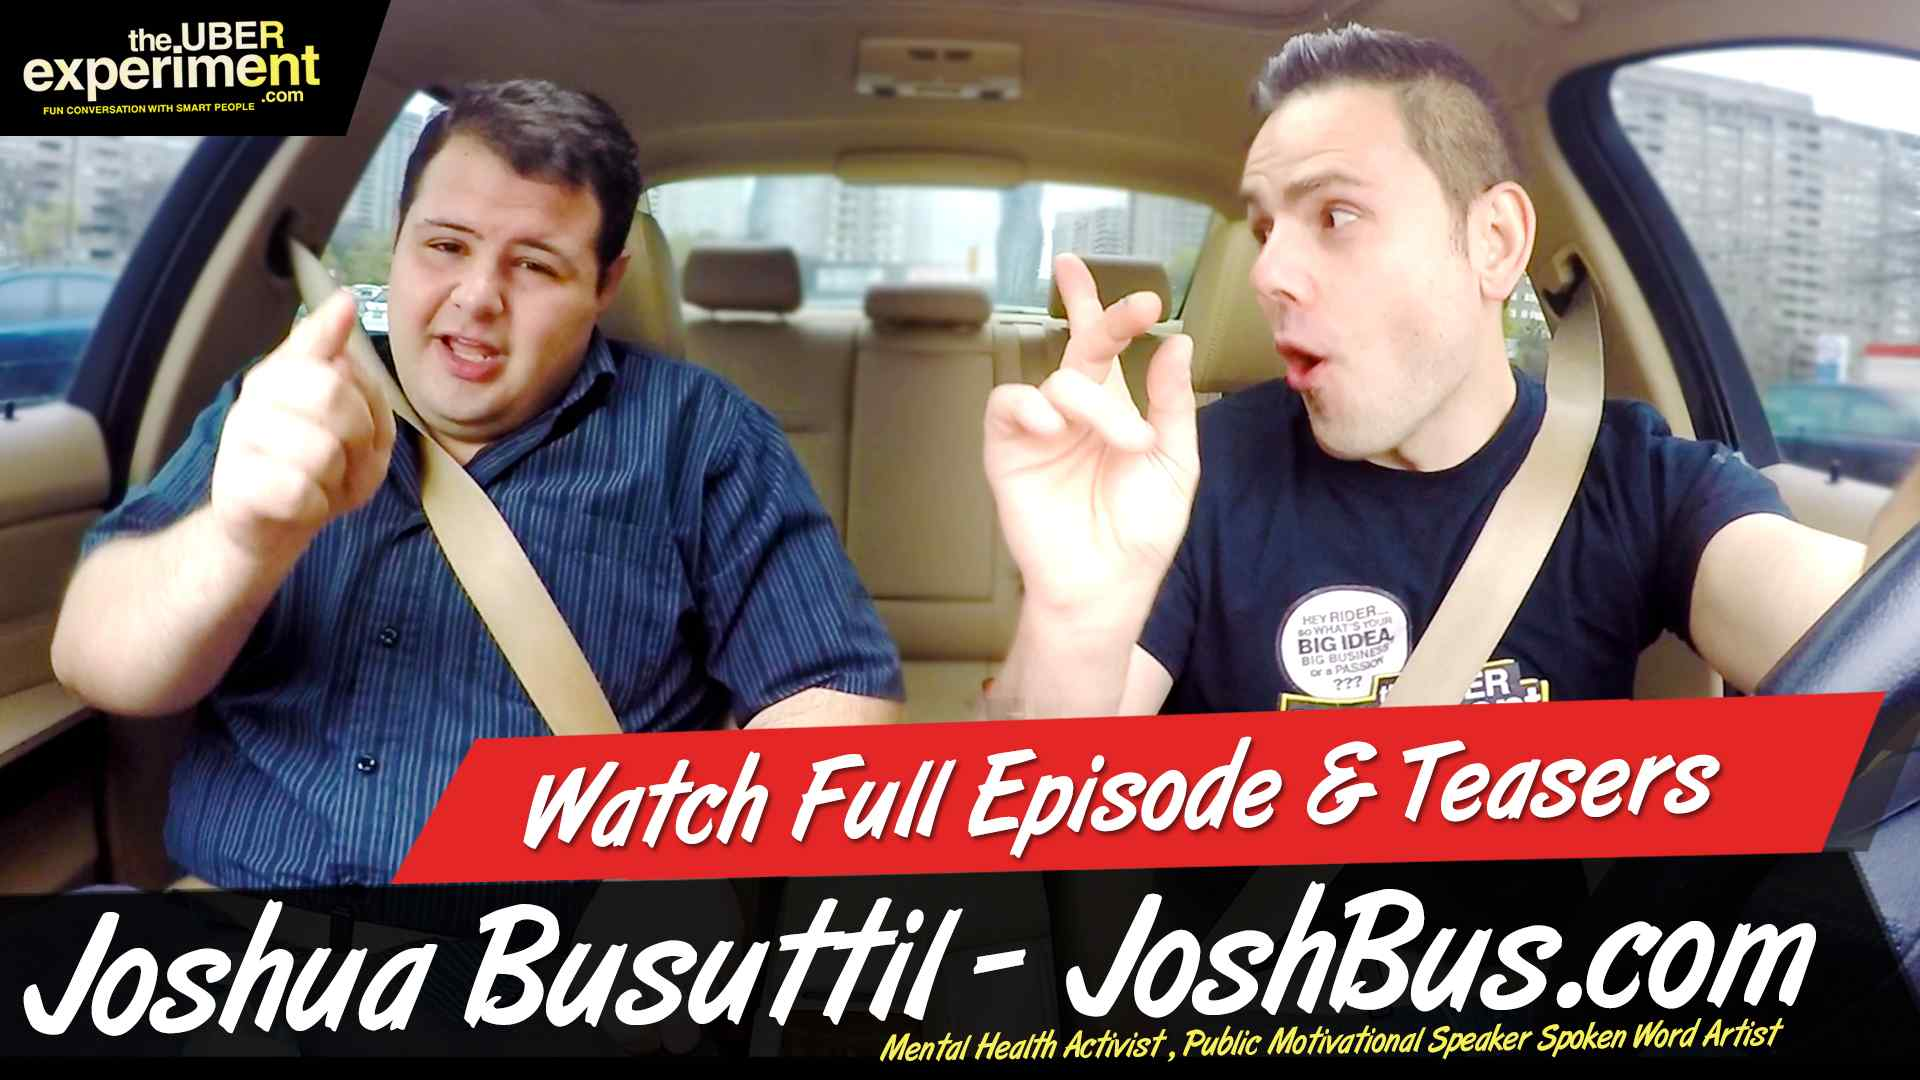 Strong Man With a Strong Plan! Mental Health Activist Joshua Busuttil is the voice for the voiceless on this Episode of The Uber Experiment Business Reality Show.